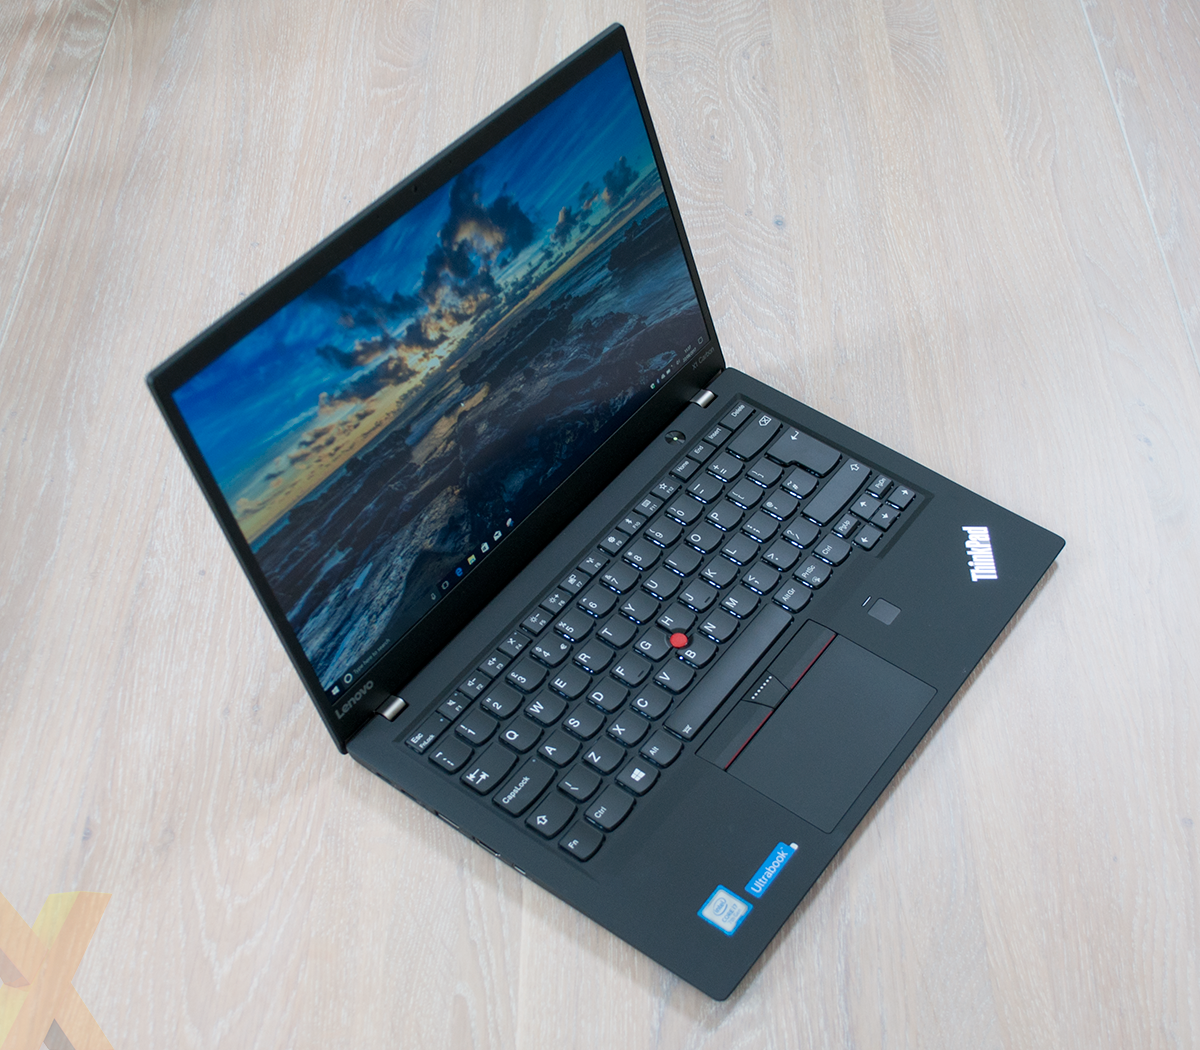 Review: Lenovo ThinkPad X1 Carbon (2017, 5th Gen) - Laptop